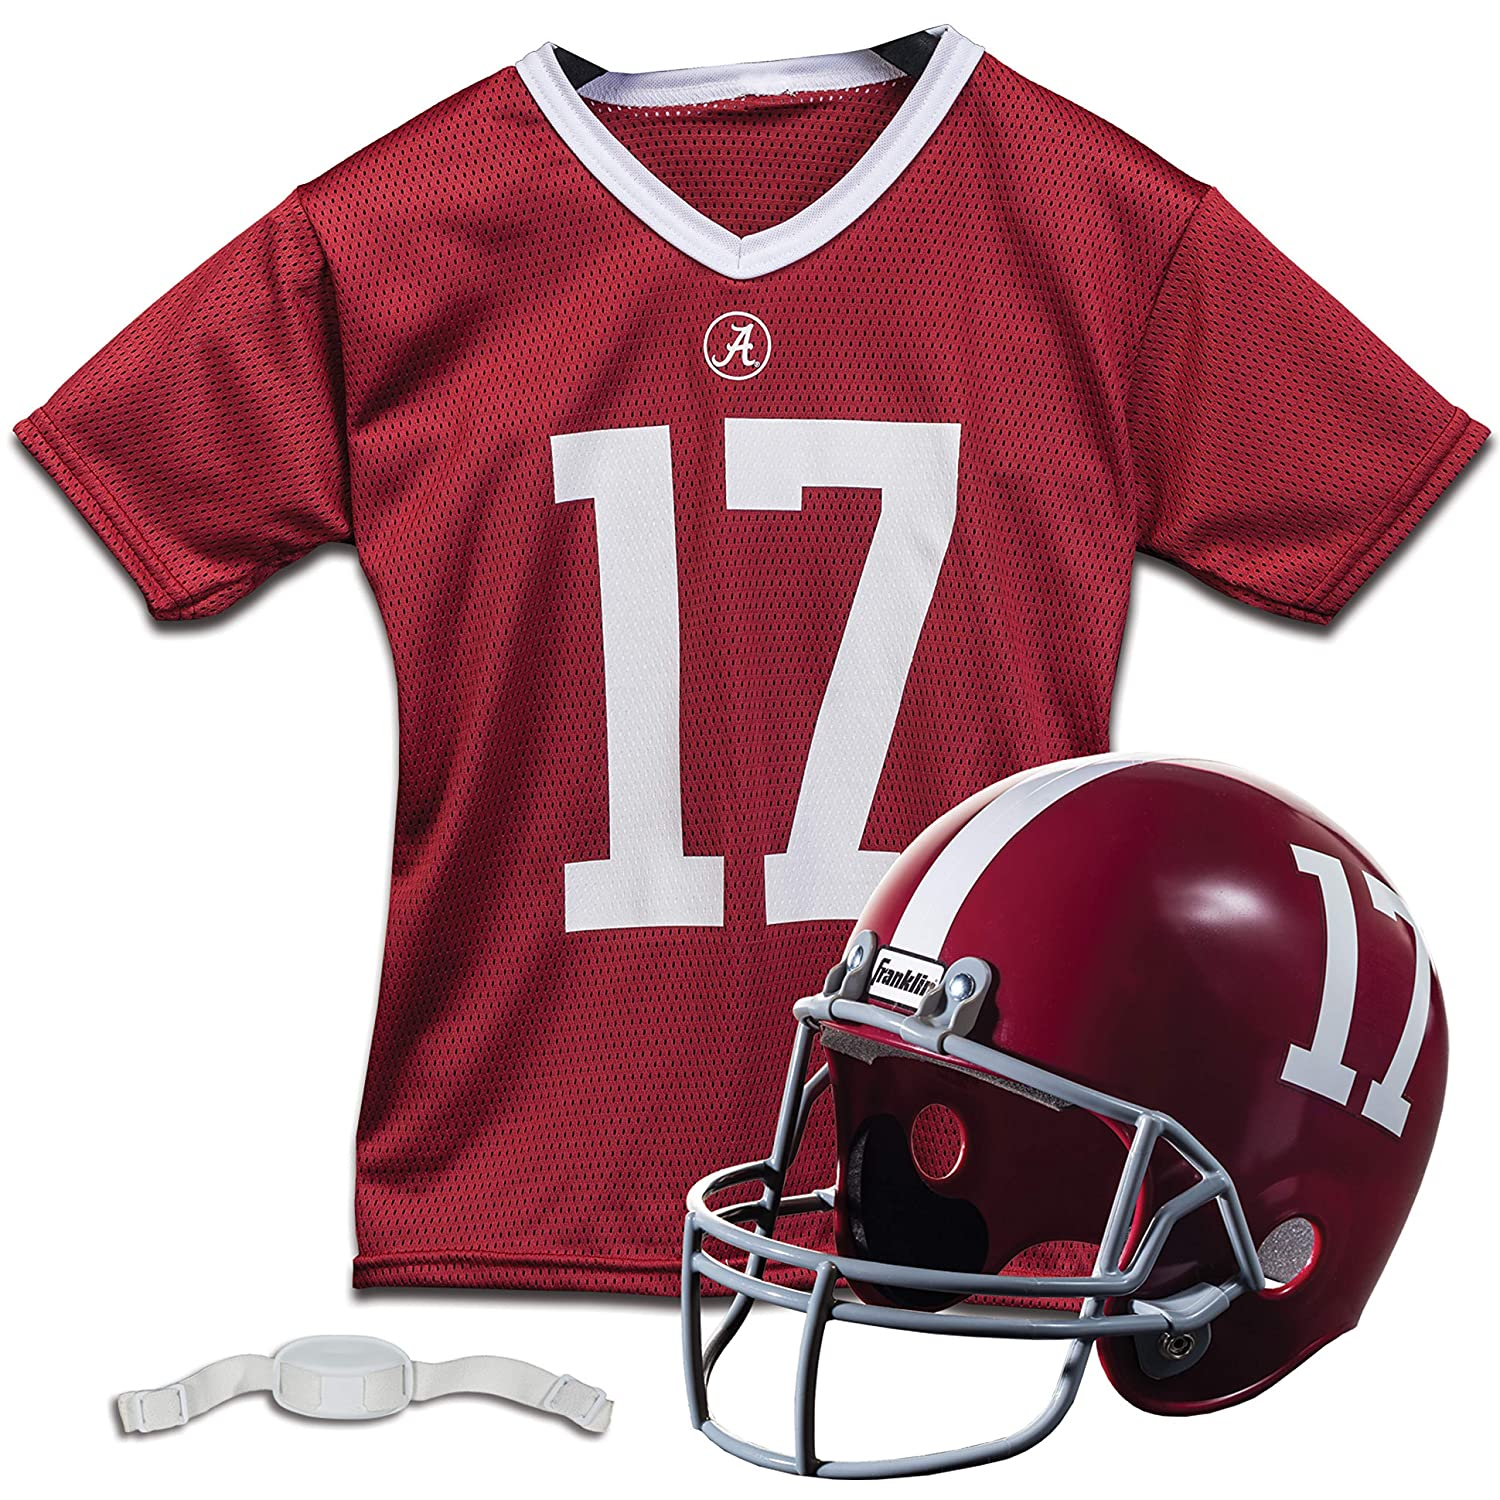 (Alabama Crimson Tide) - Franklin Sports NCAA Alabama Crimson Tide Helmet and Jersey Set   B003XQP60C